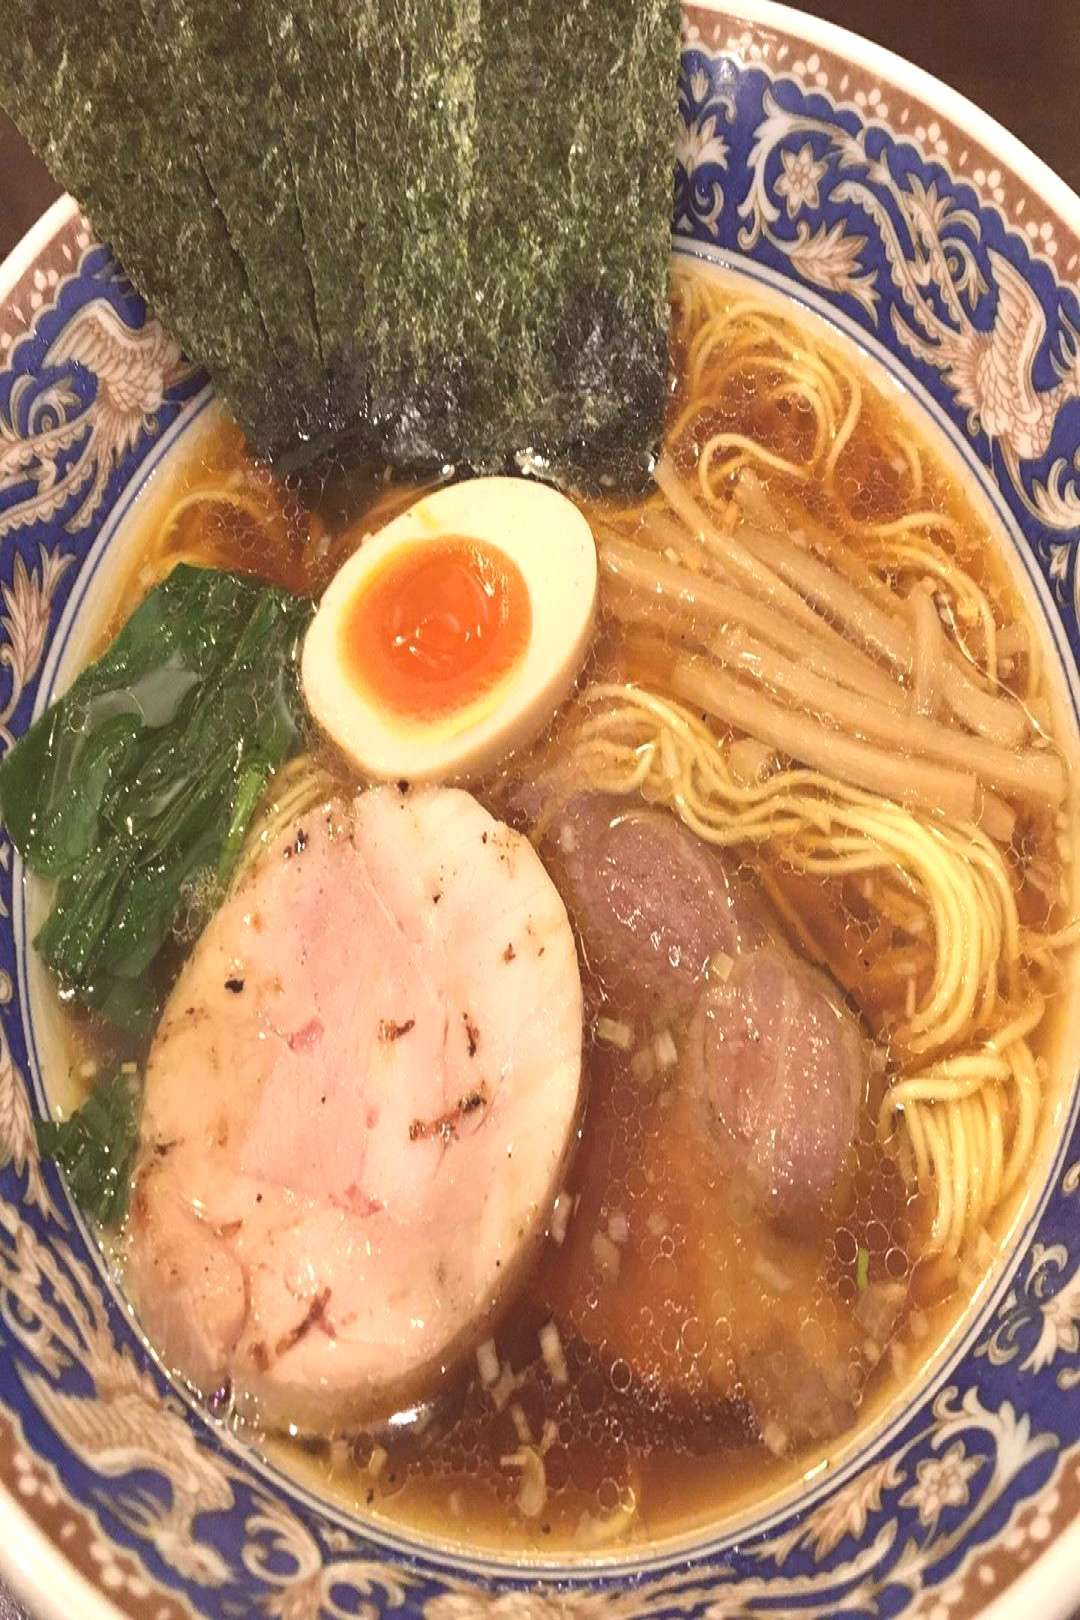 #food #中村屋#海老名#ラーメン#ラーメンパトロール#ラYou can find Ramen noodles and more on our website.#中村屋#海老名#ラーメン#ラーメンパトロール#ラ